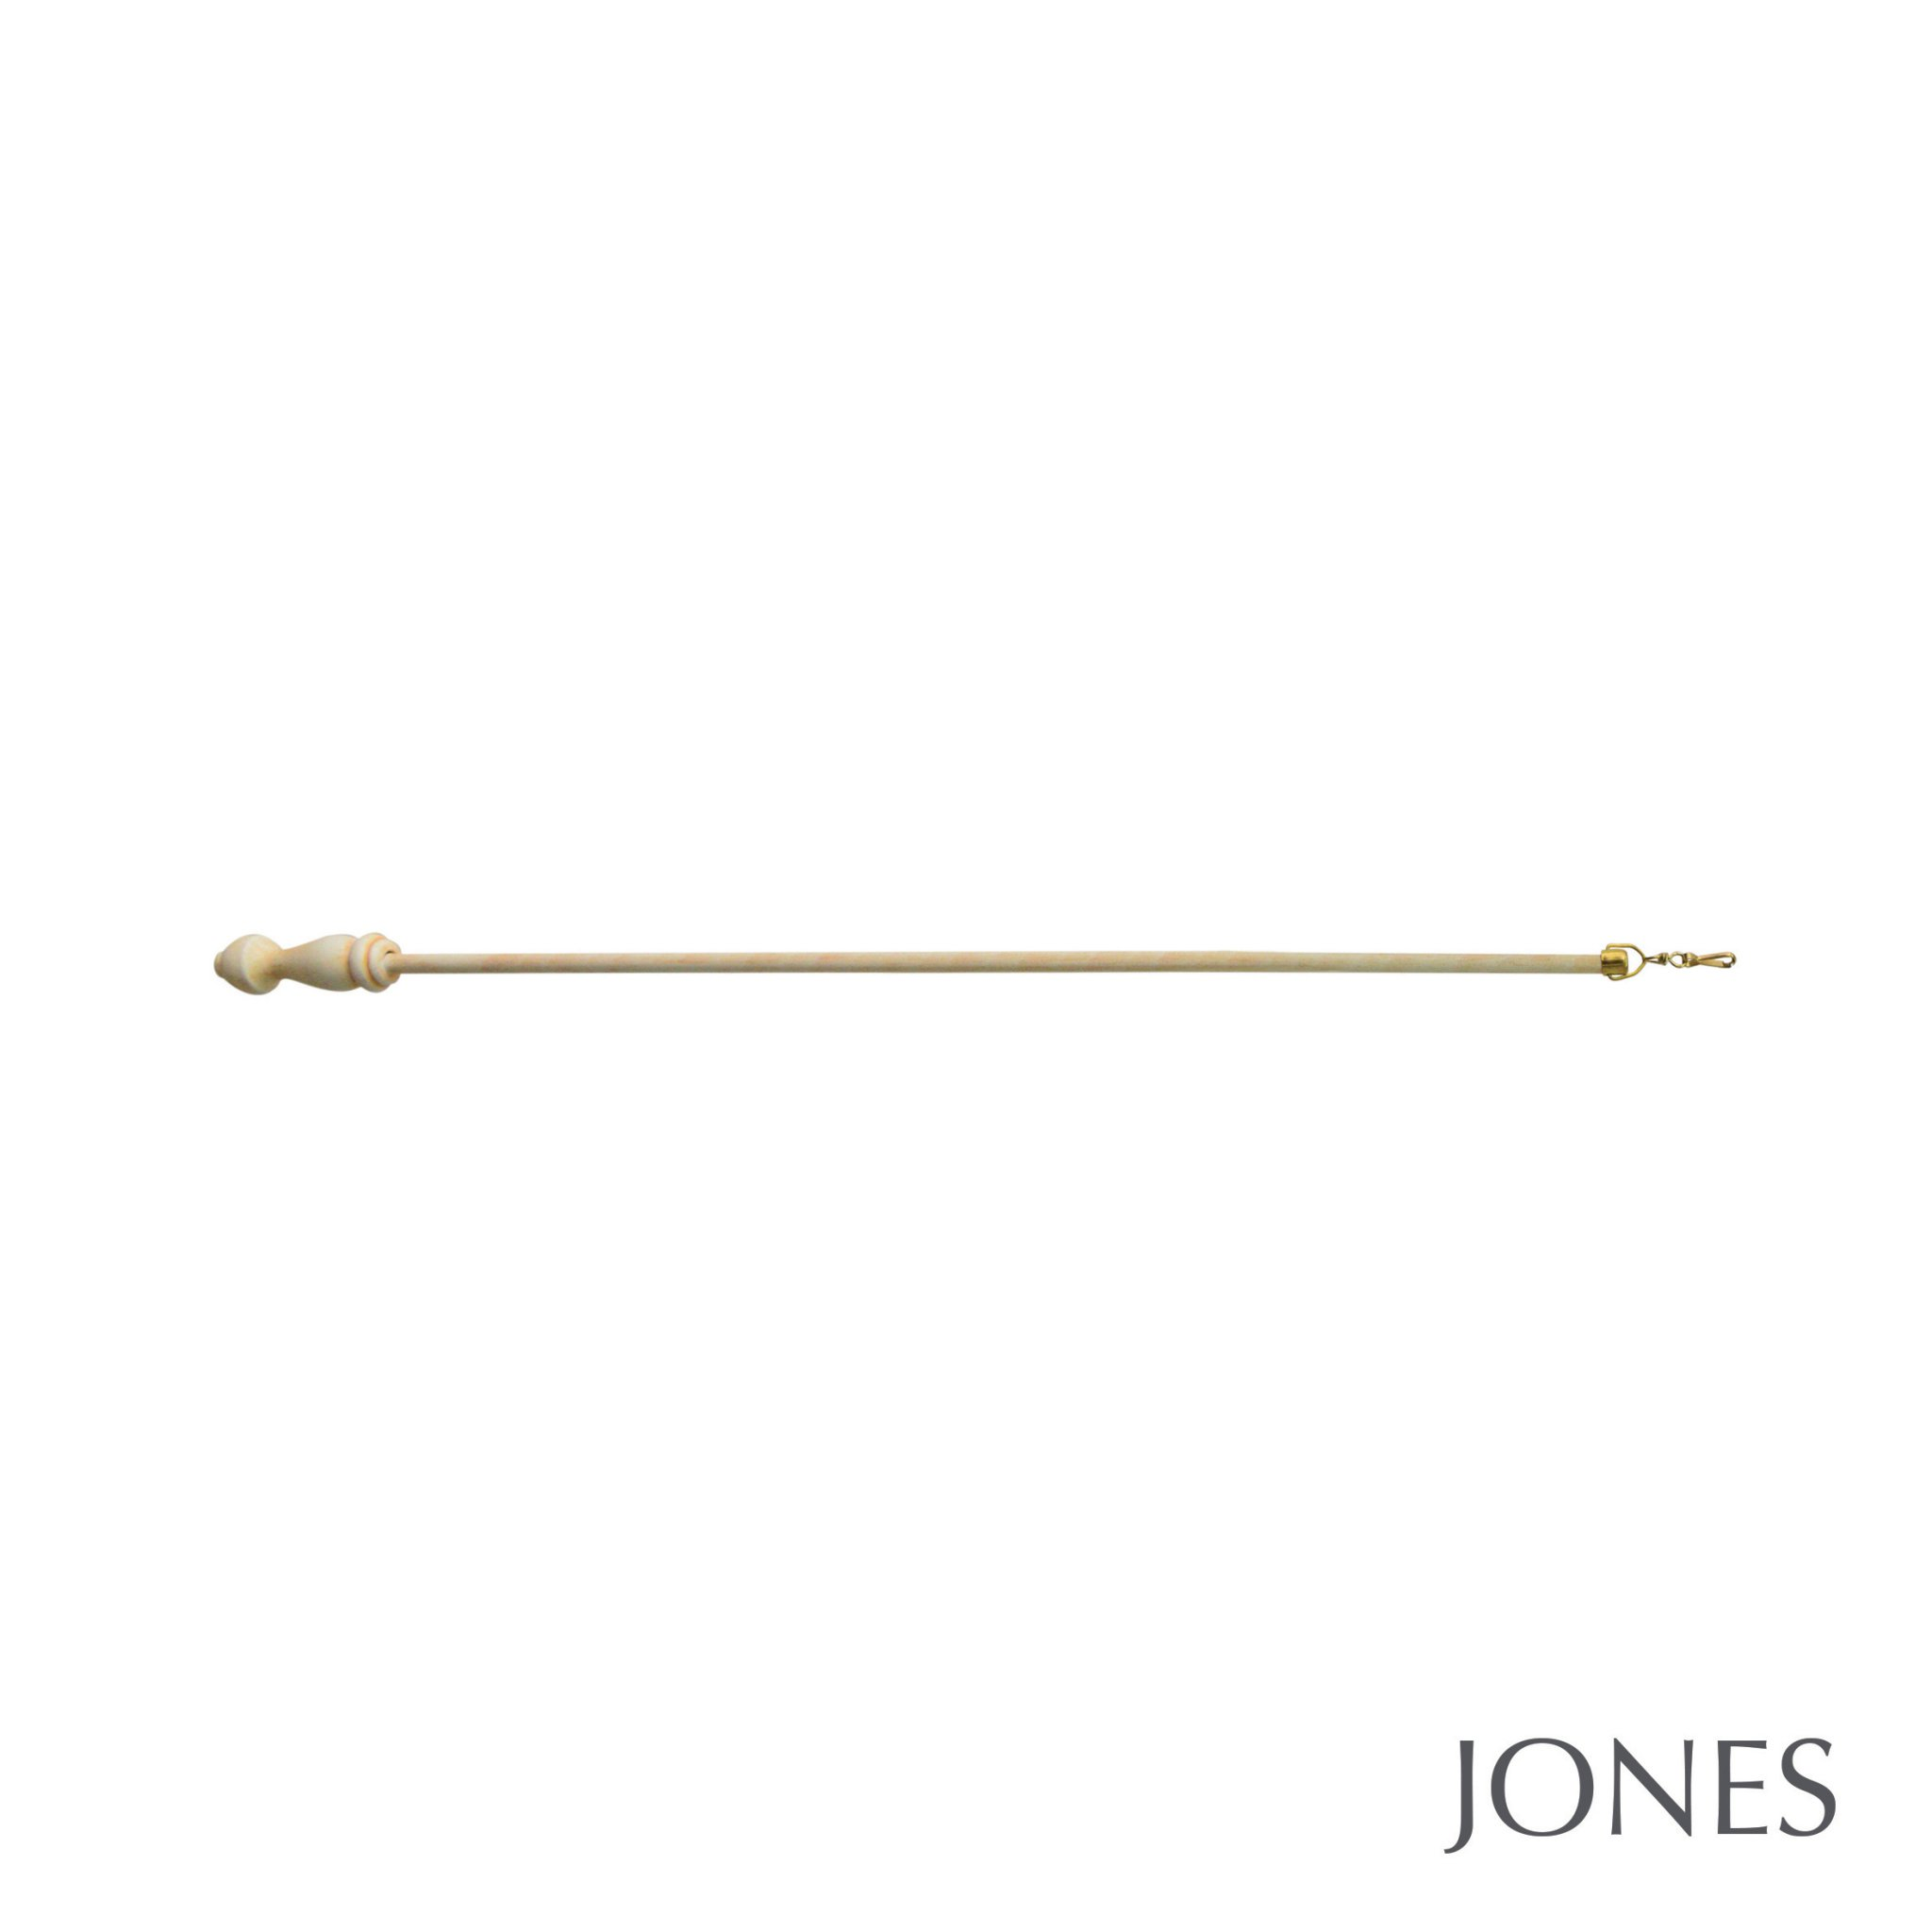 Jones Florentine Handcrafted 50mm Draw Rods